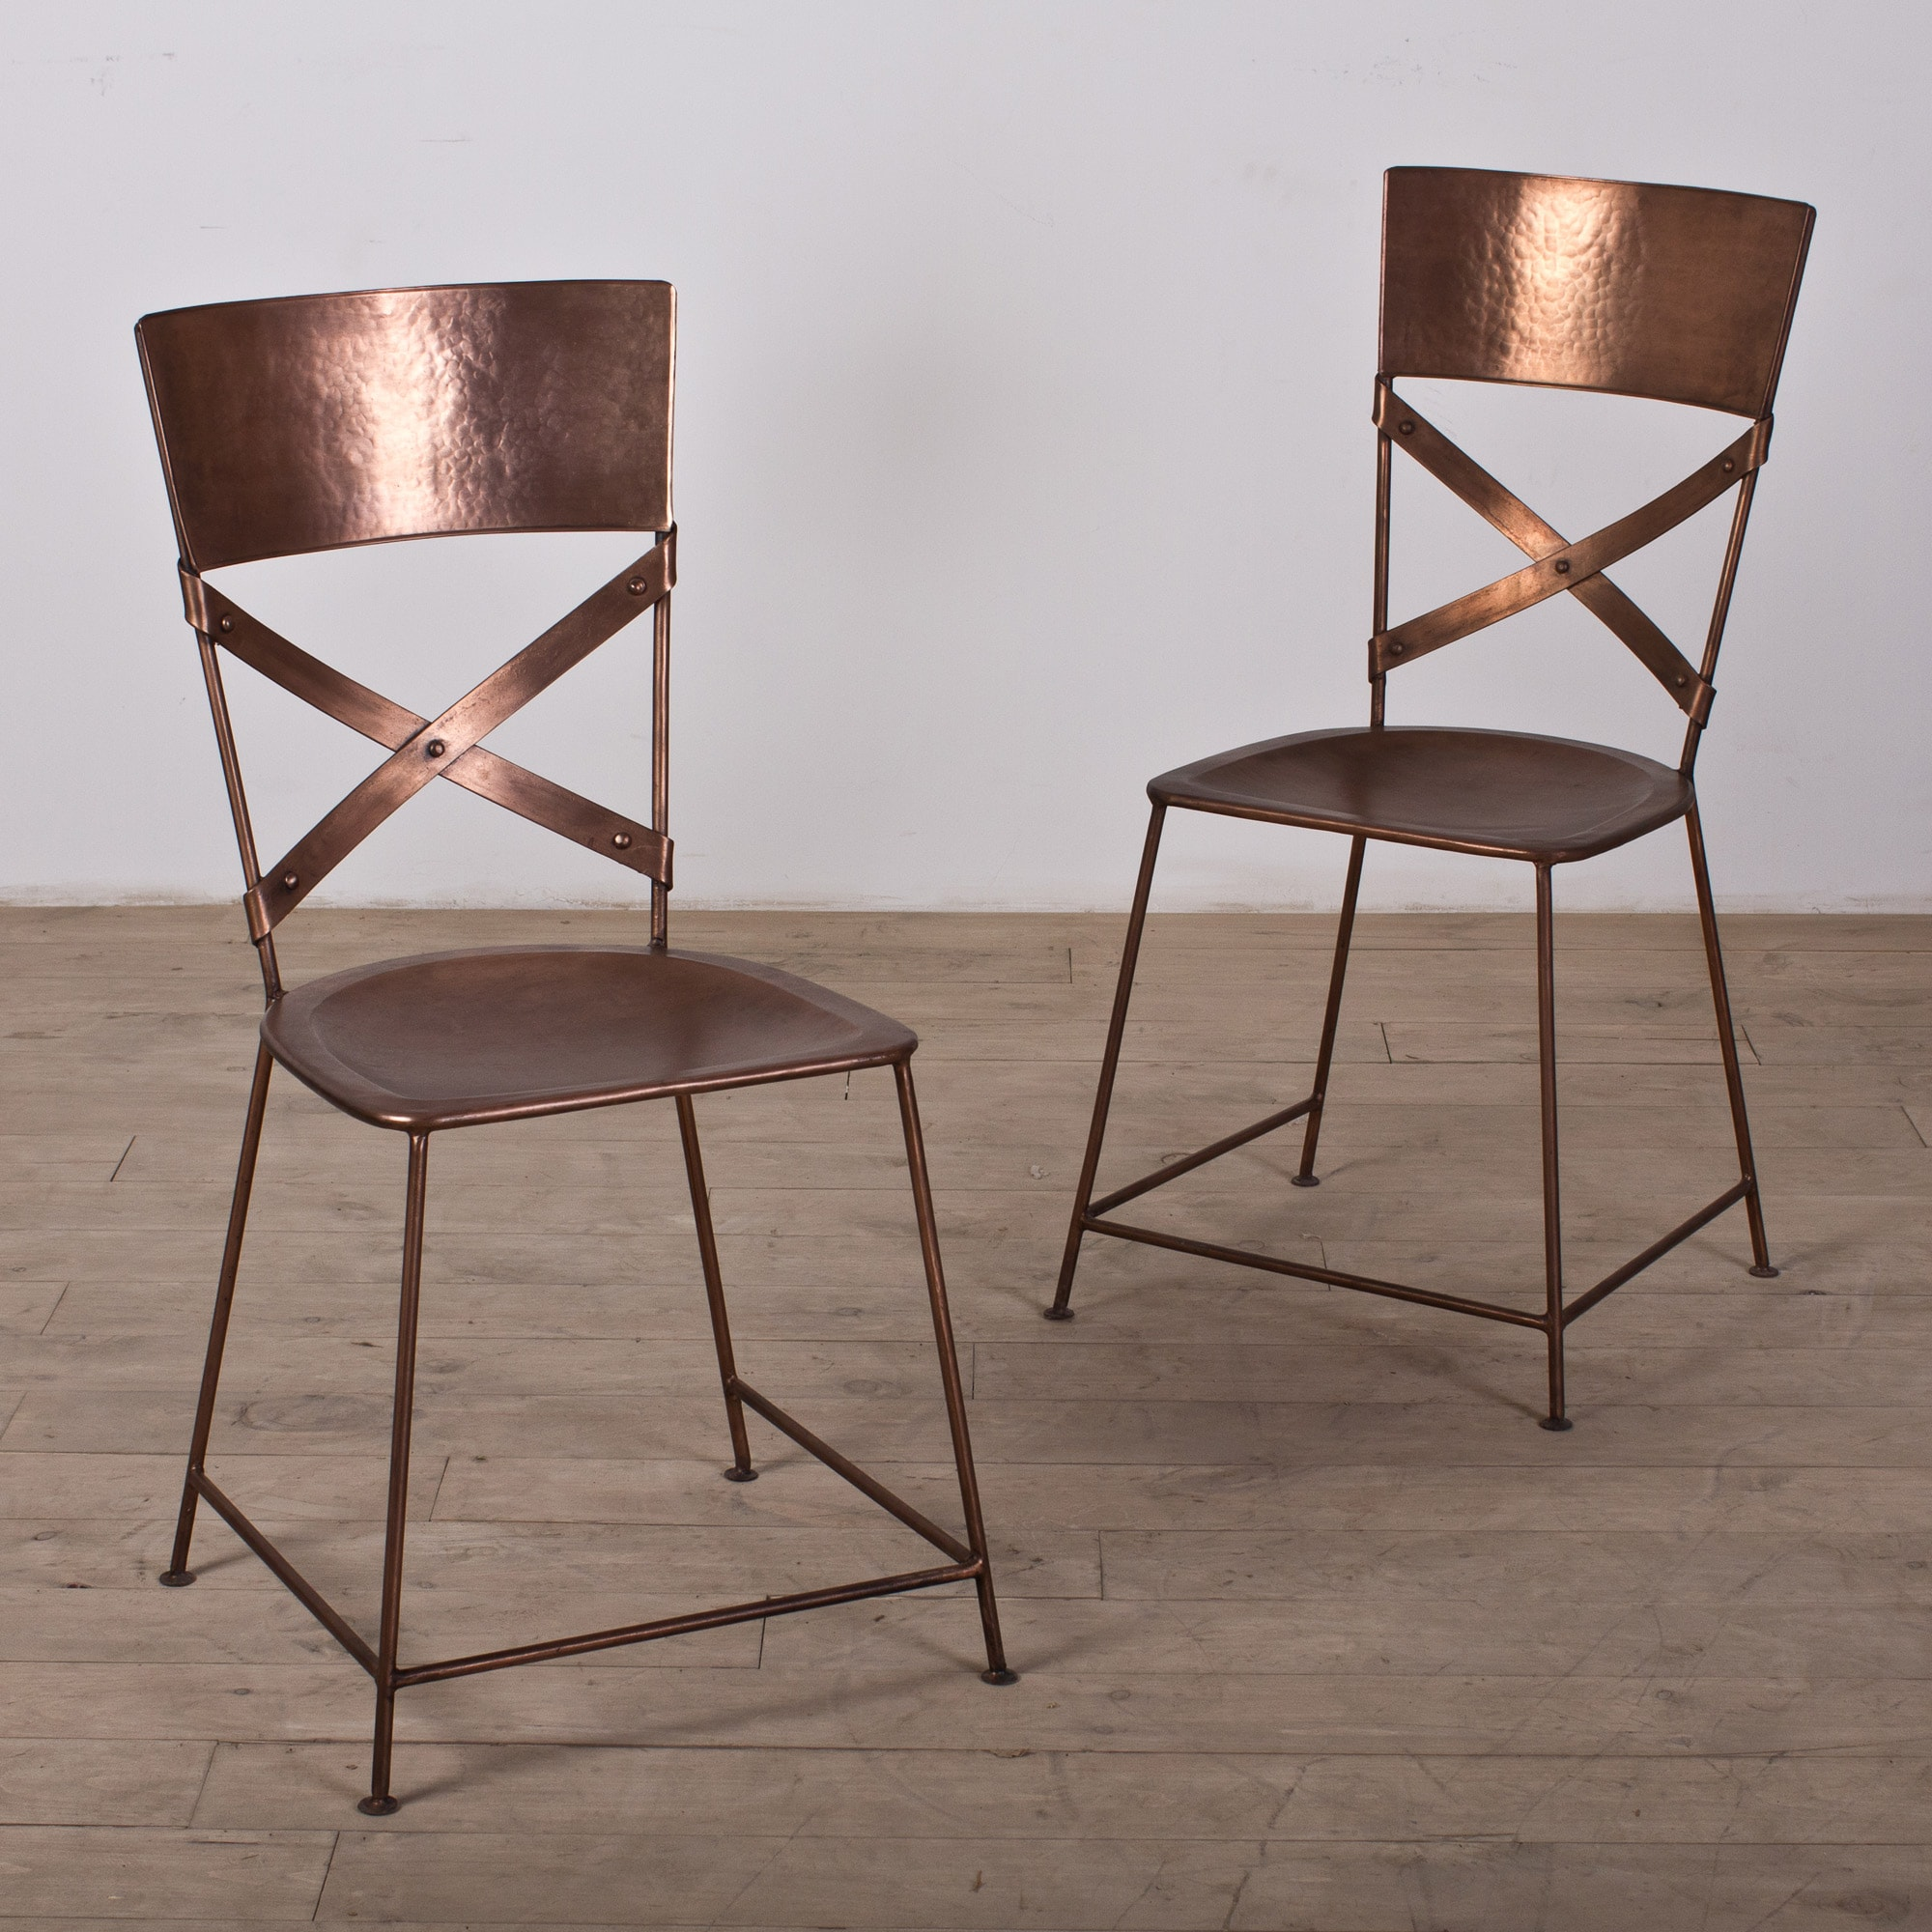 overstock com chairs fishing chair accessories set of two jabalpur dining copper india